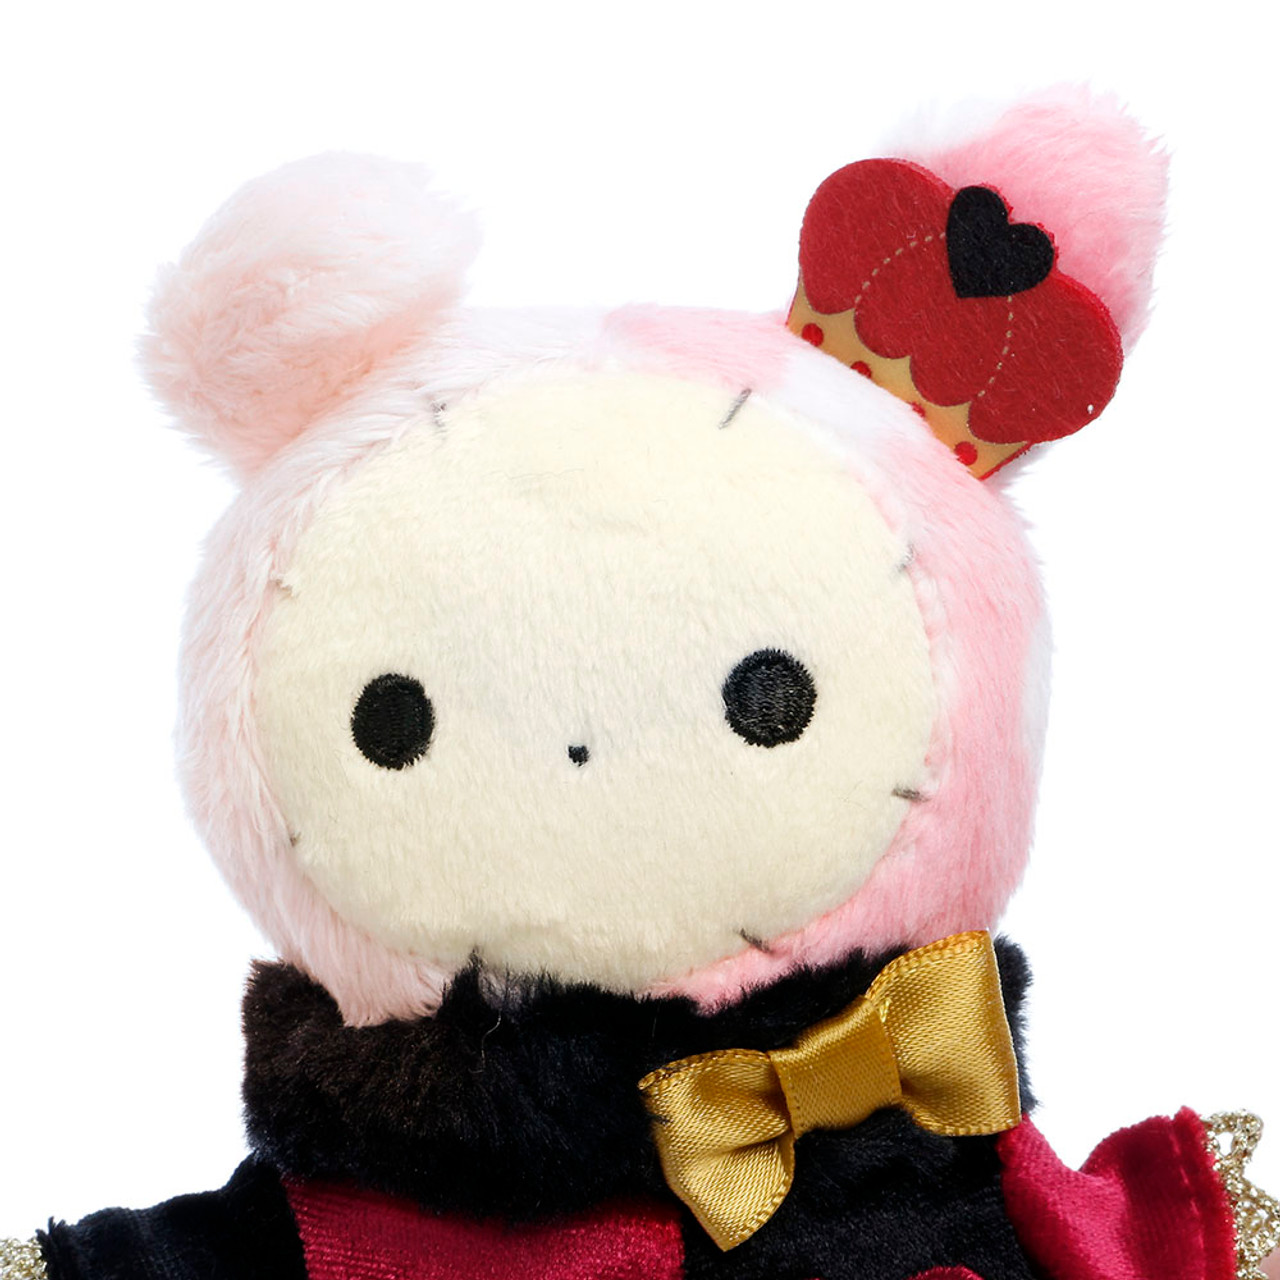 San-x Sentimental Circus Shappo Bunny Queen of Hearts Plush Doll Charms ( Close up View )